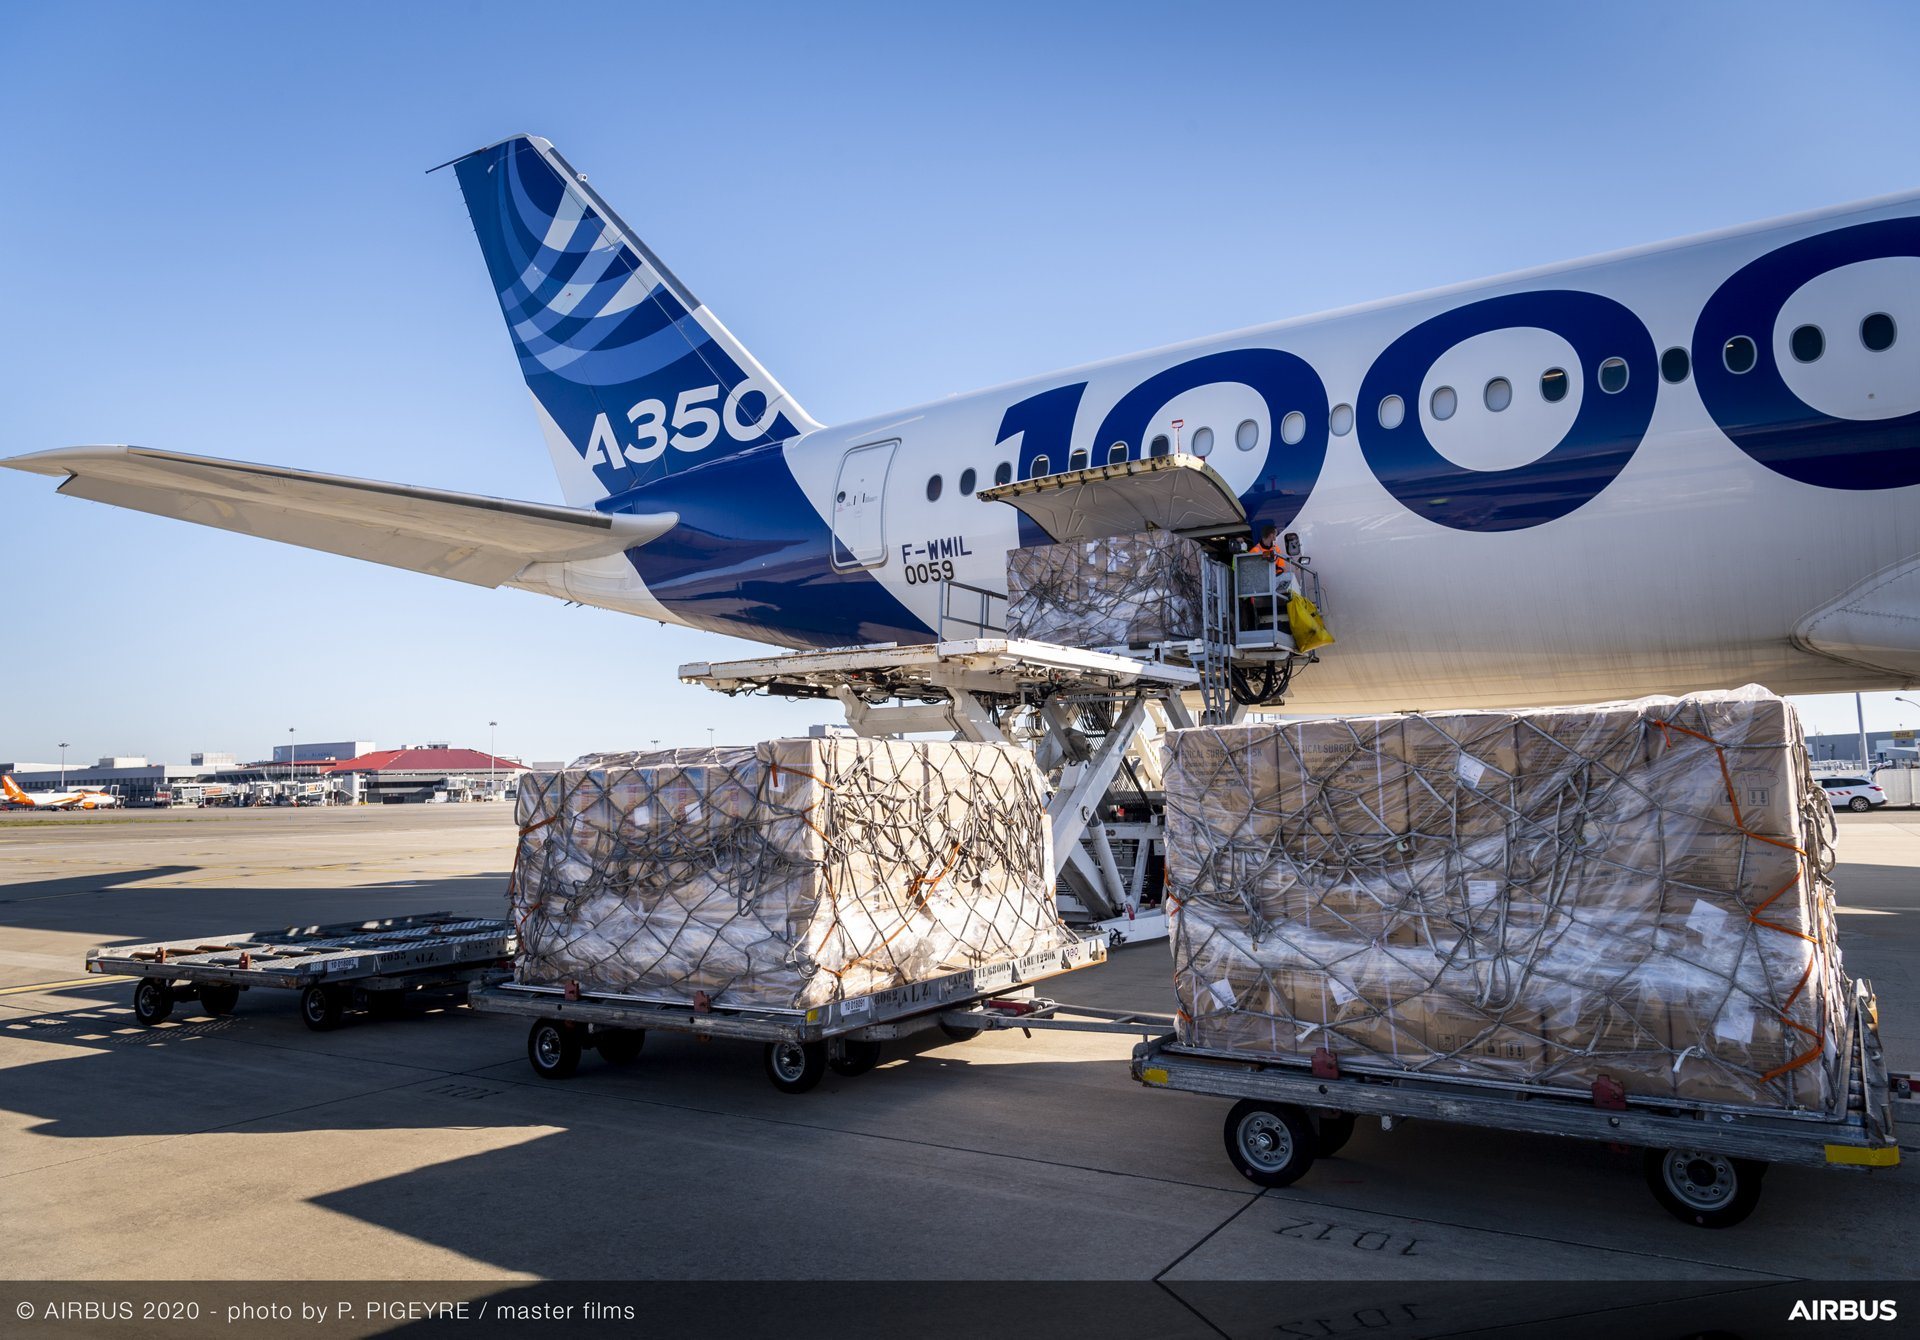 Today Airbus is especially proud of Airbus Flight Test teams and all those involved in this #A350-1000 flight supporting the China-Europe air-bridge over the last 3 days.   More face masks and medical supplies will be handed over to governments in the next few days, supporting medical teams. #COVID19